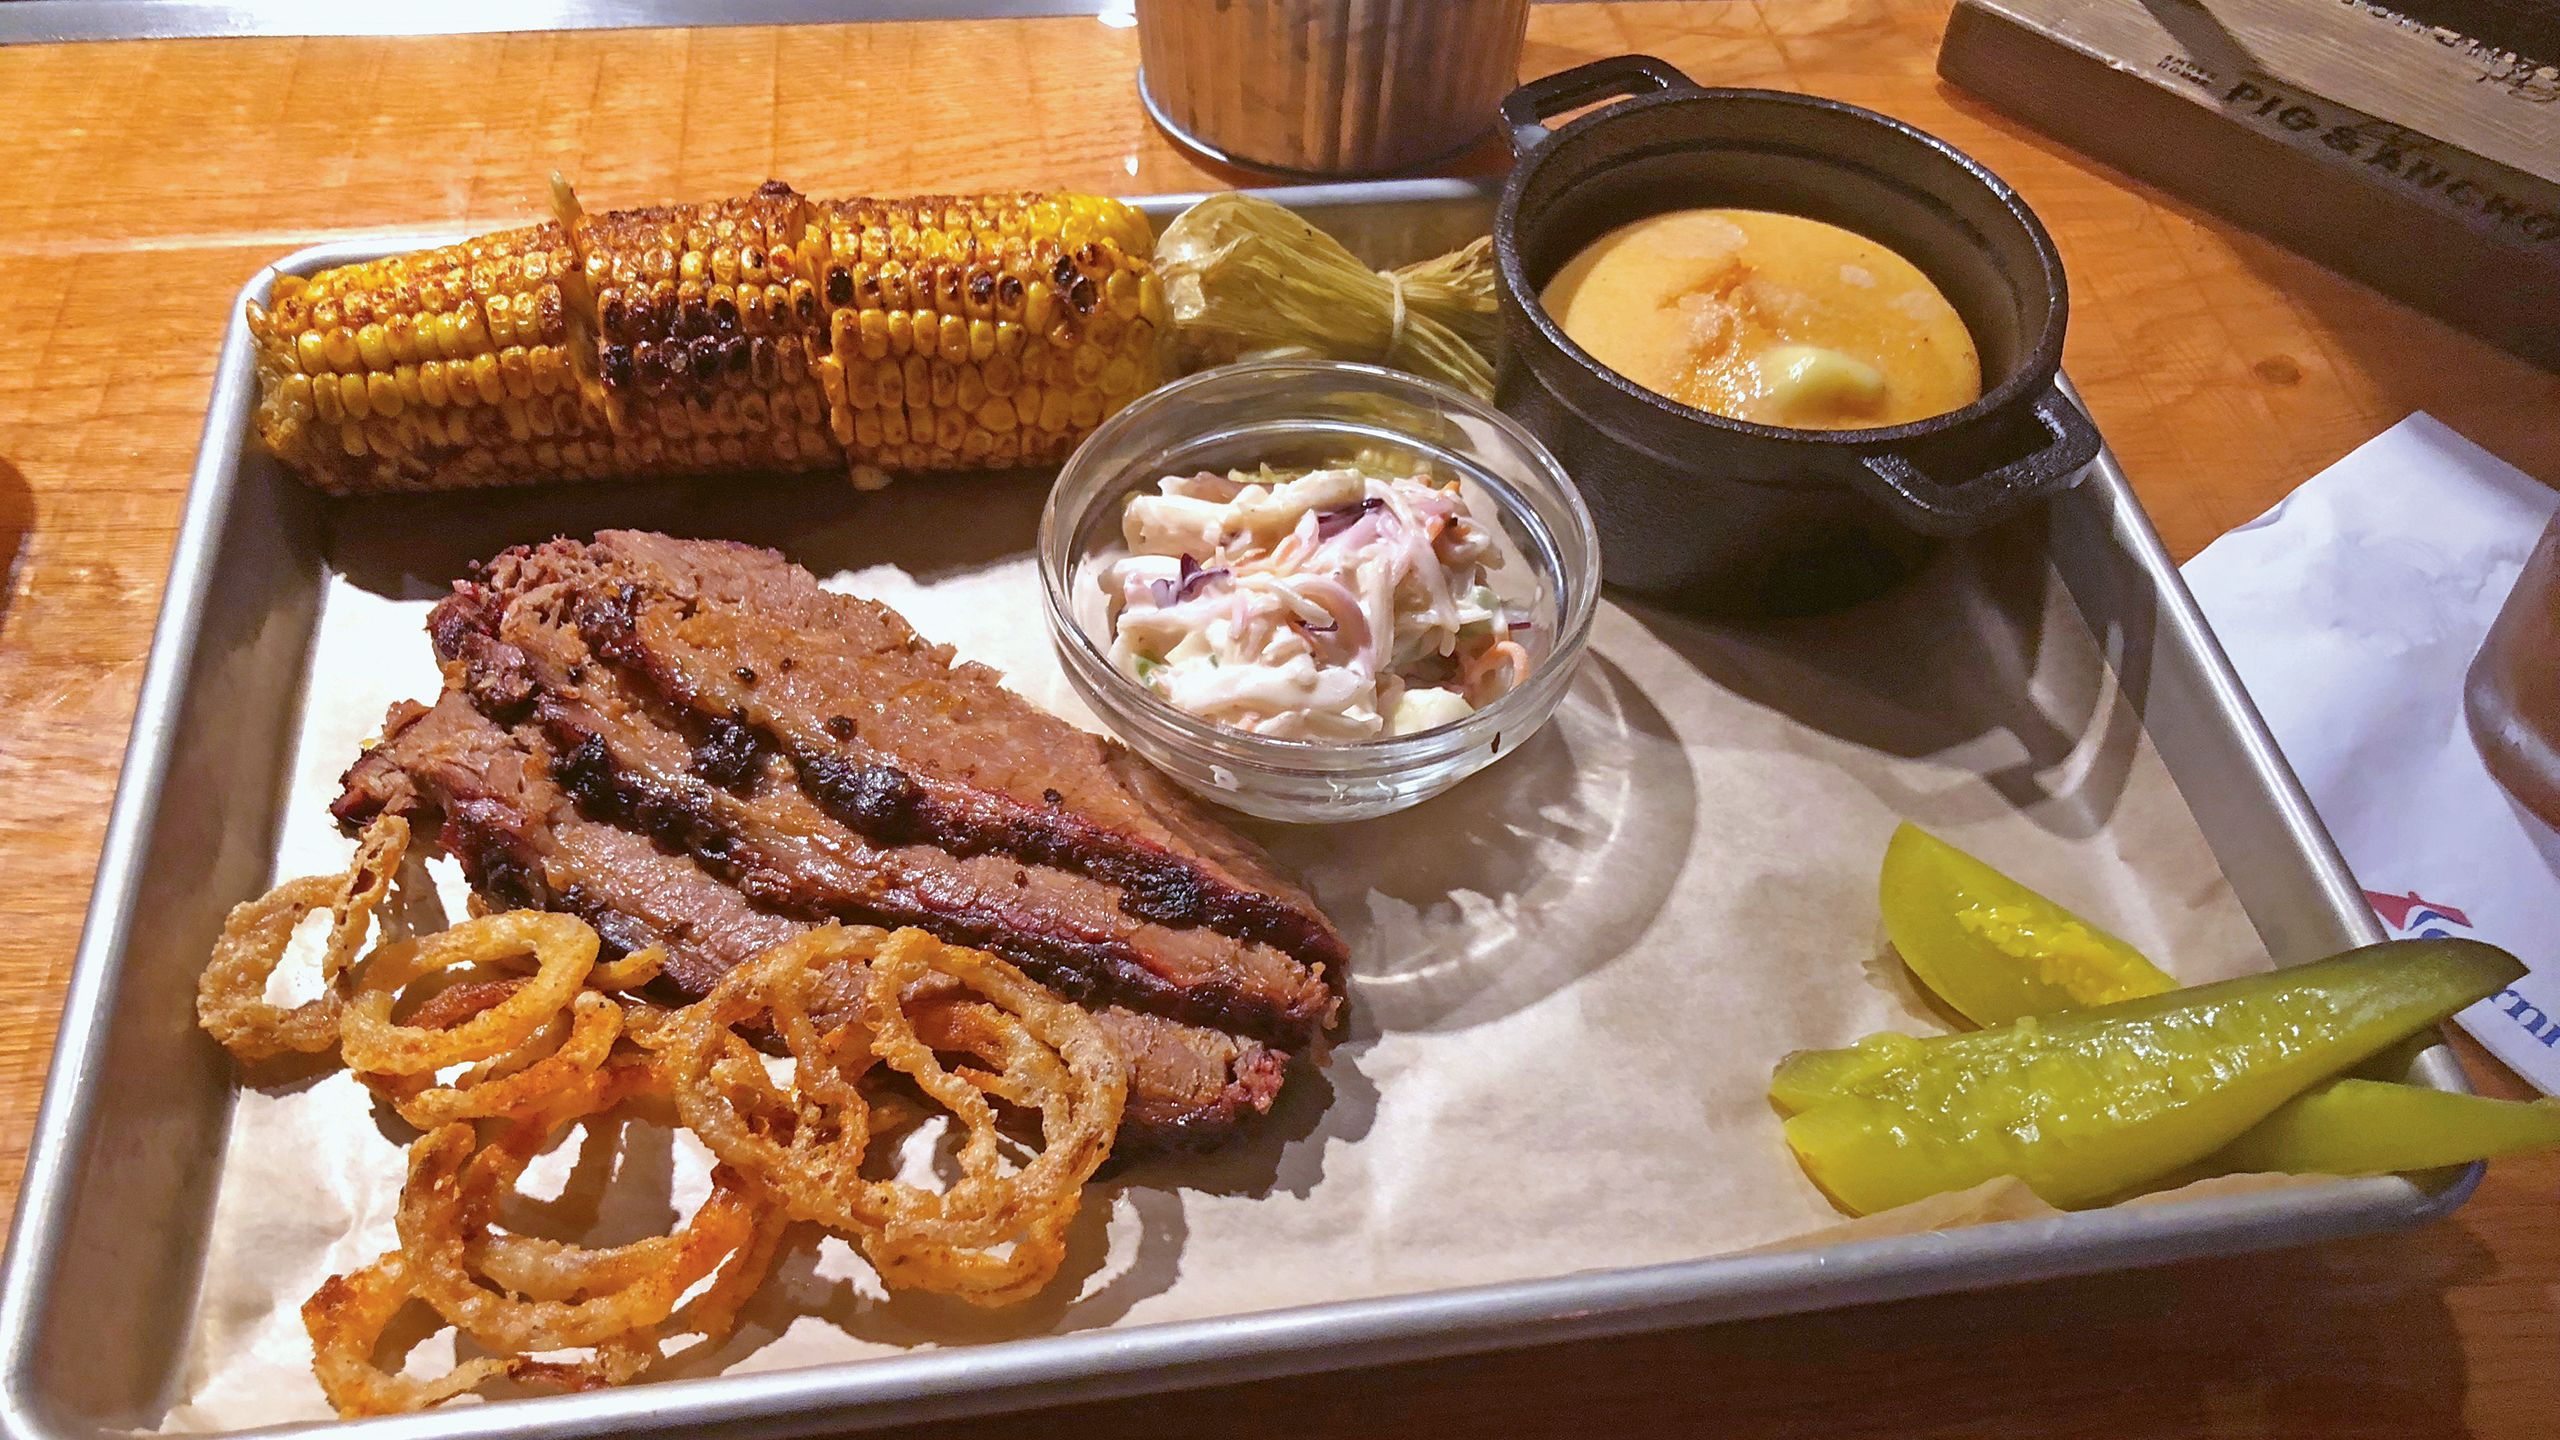 Brisket and sides at the Pig & Anchor on the Carnival Horizon. Photo by Tom Stieghorst